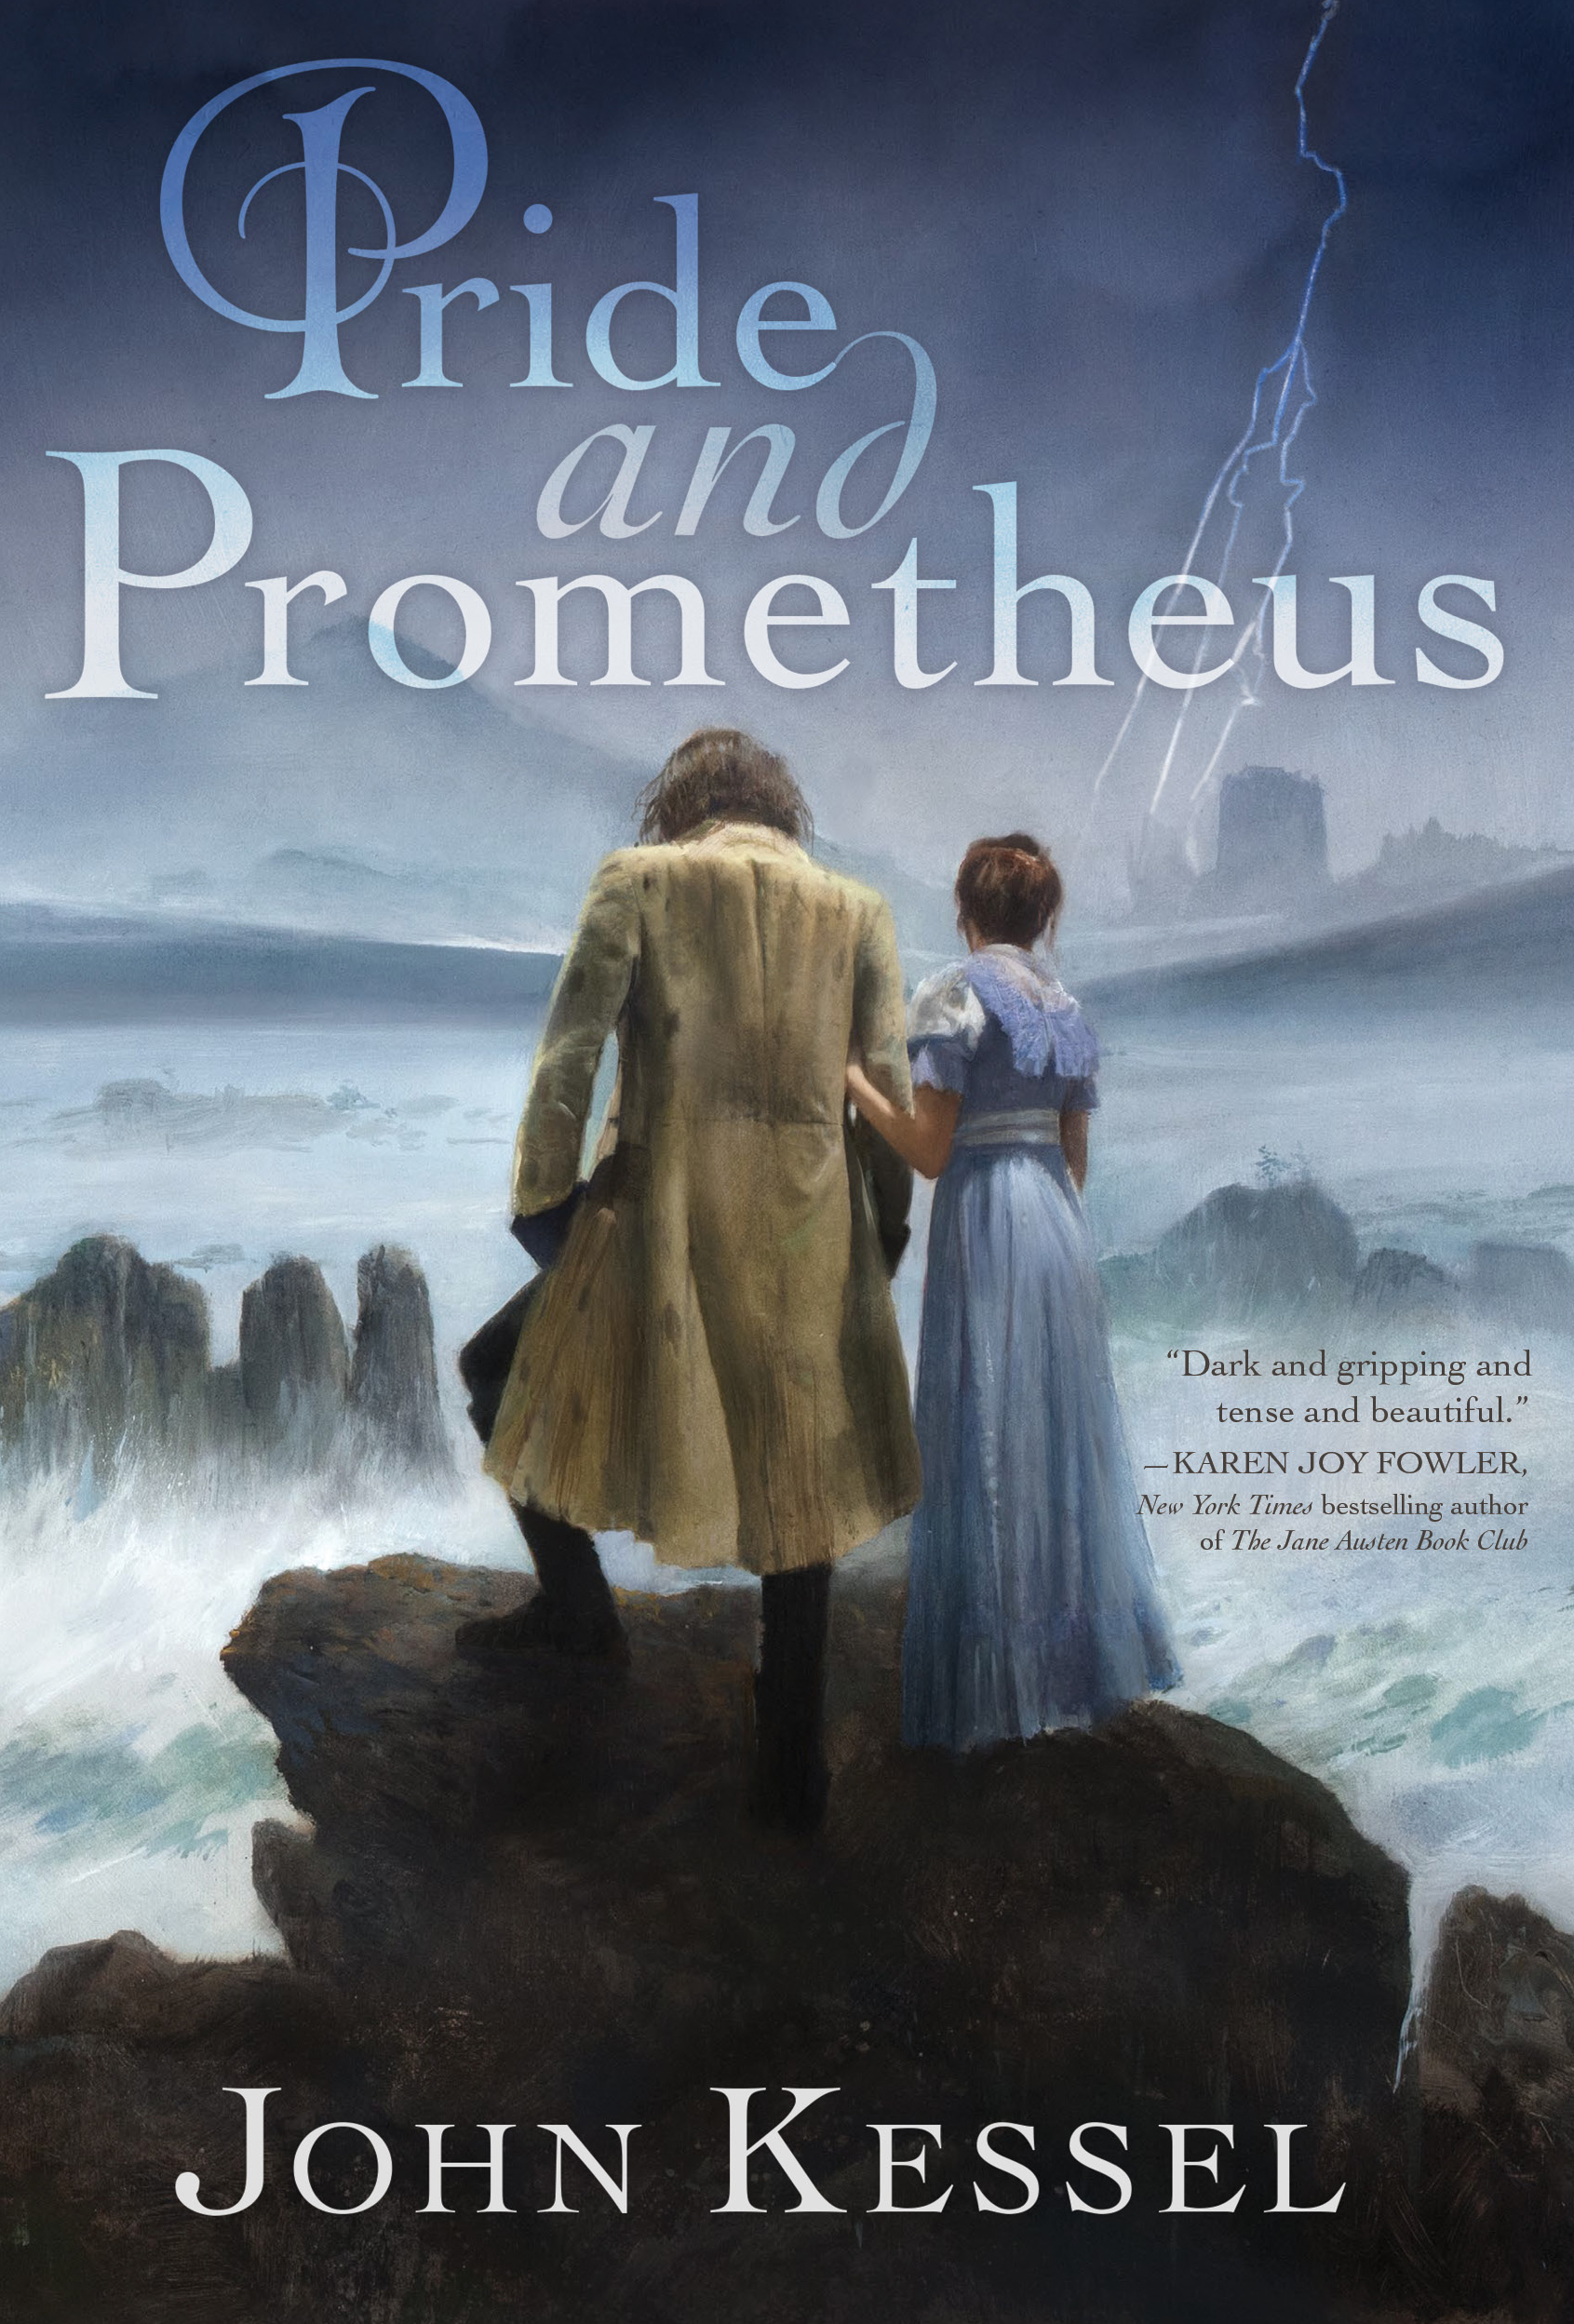 2 of the loneliest characters in literature find companionship in Pride and Prometheus